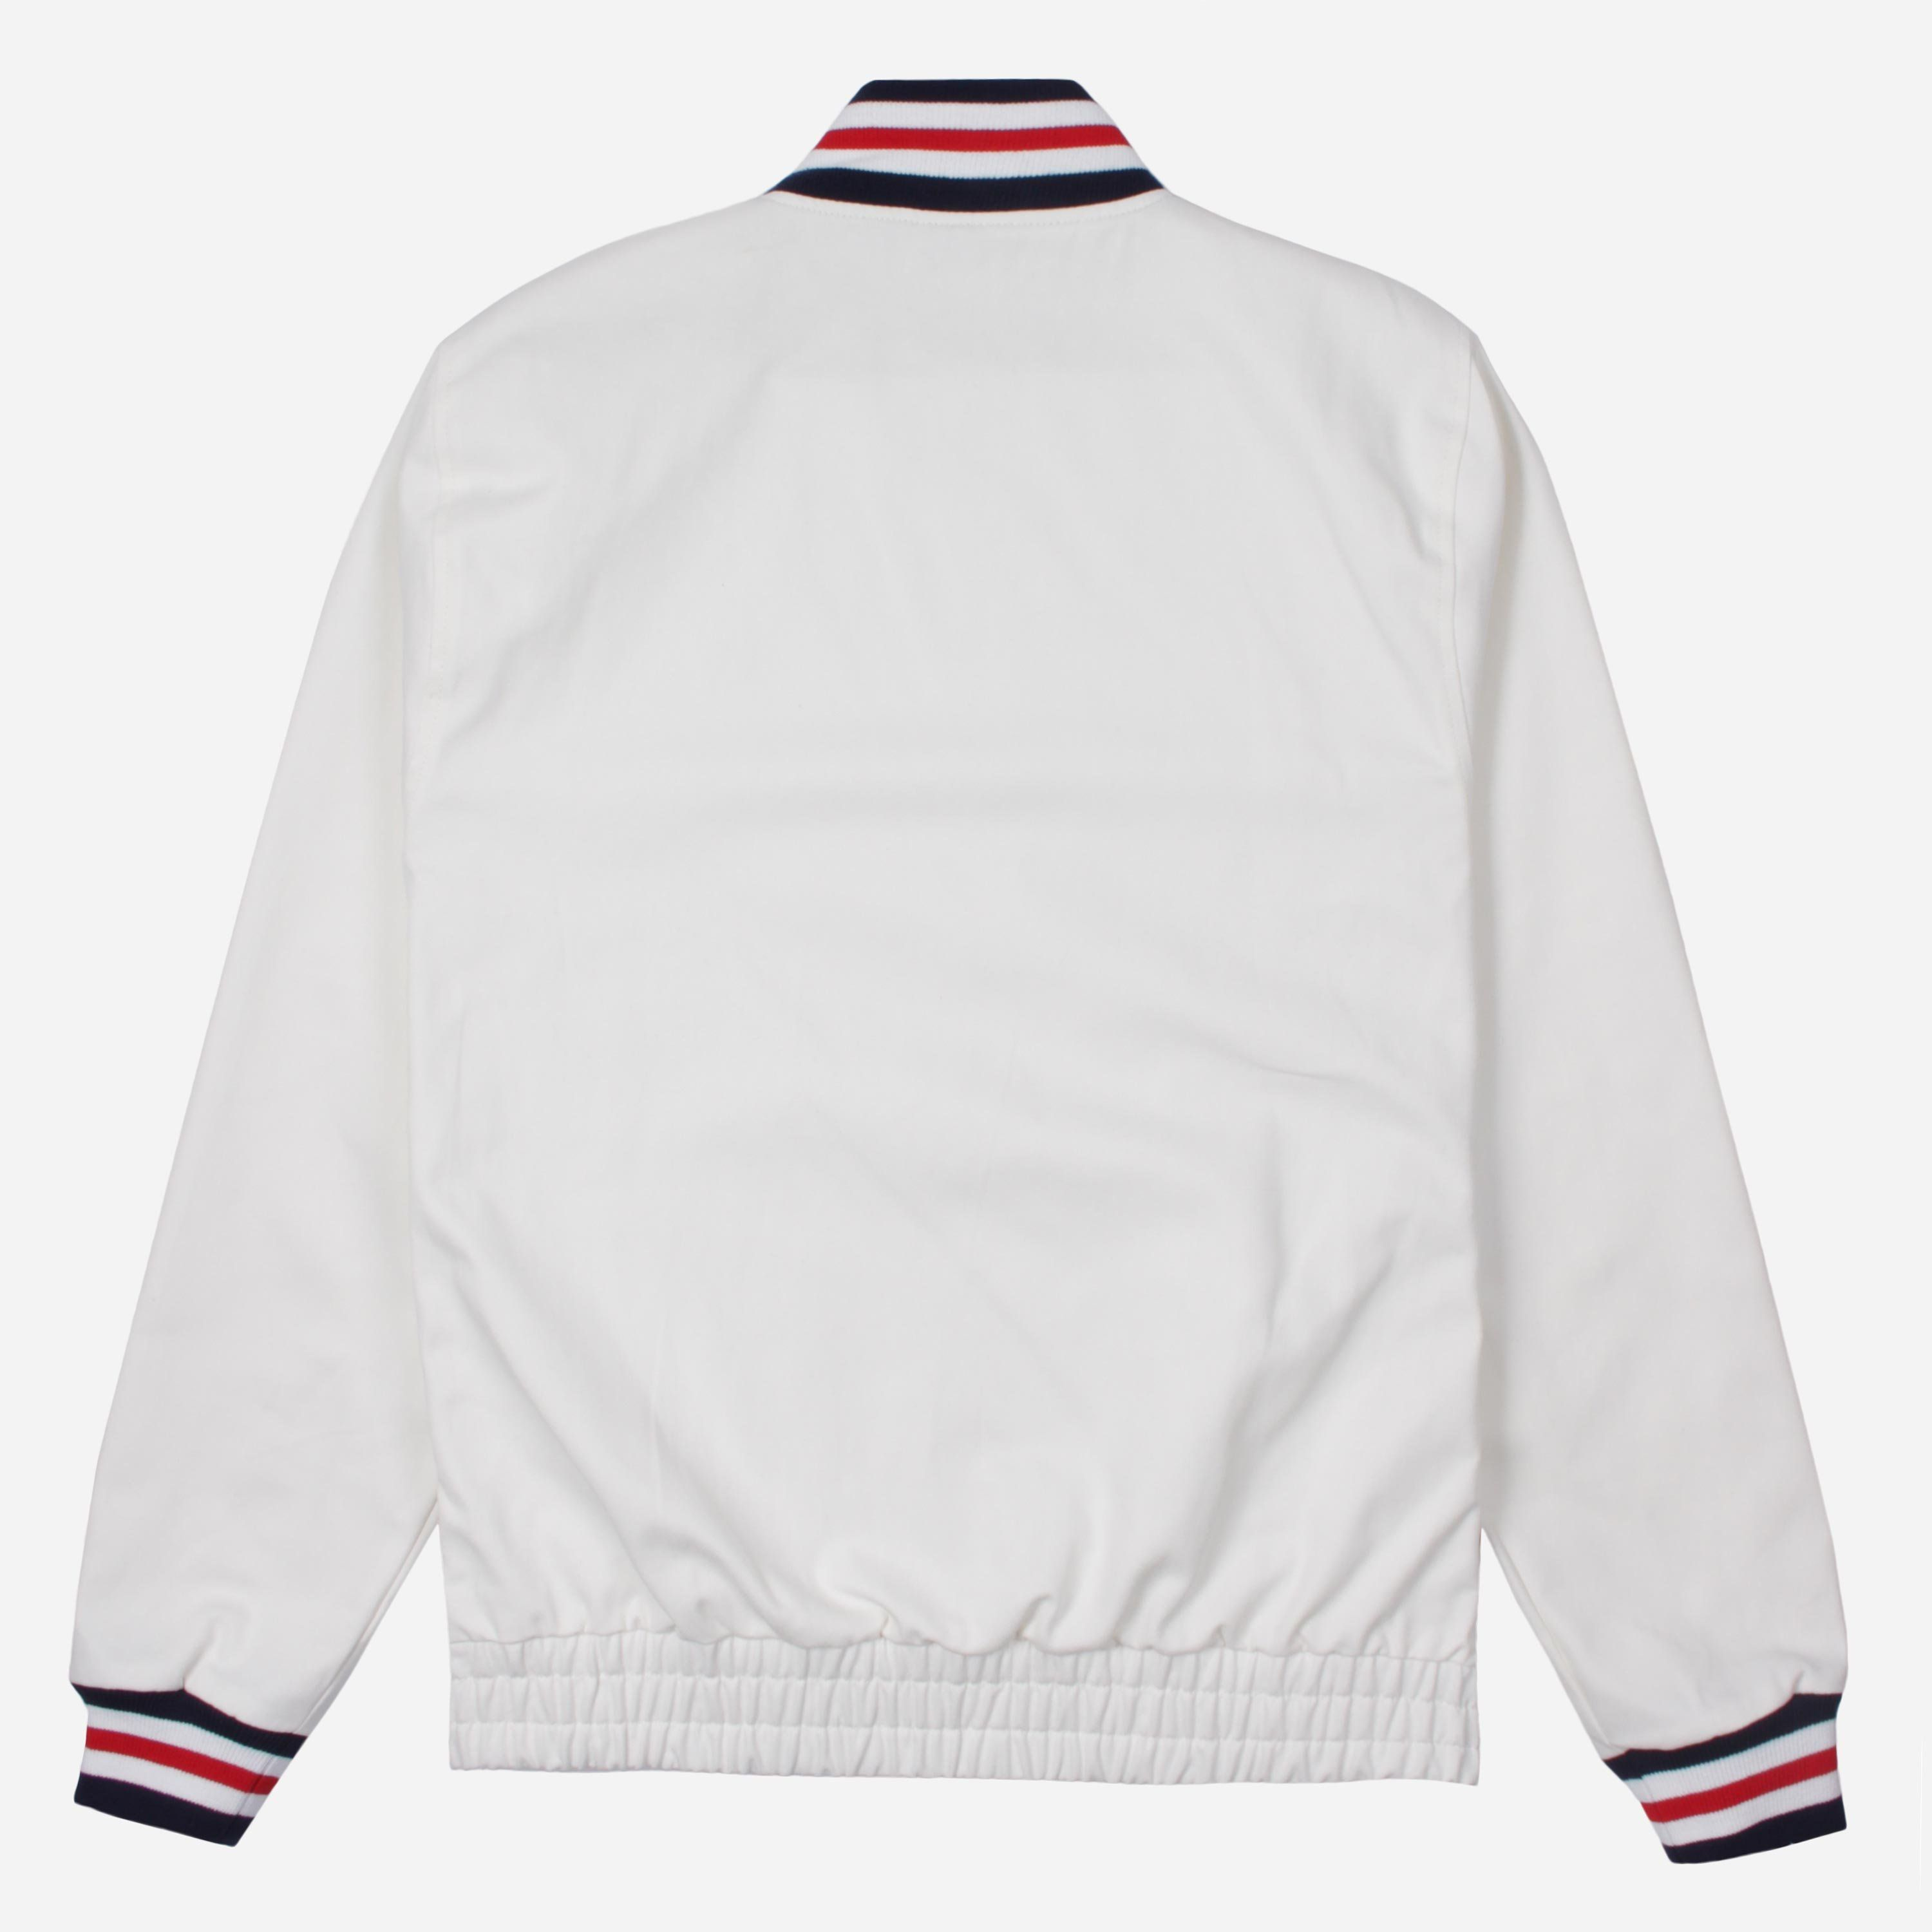 Fred Perry Reissues J1307 MIE ORIGINAL TENNIS BOMBER